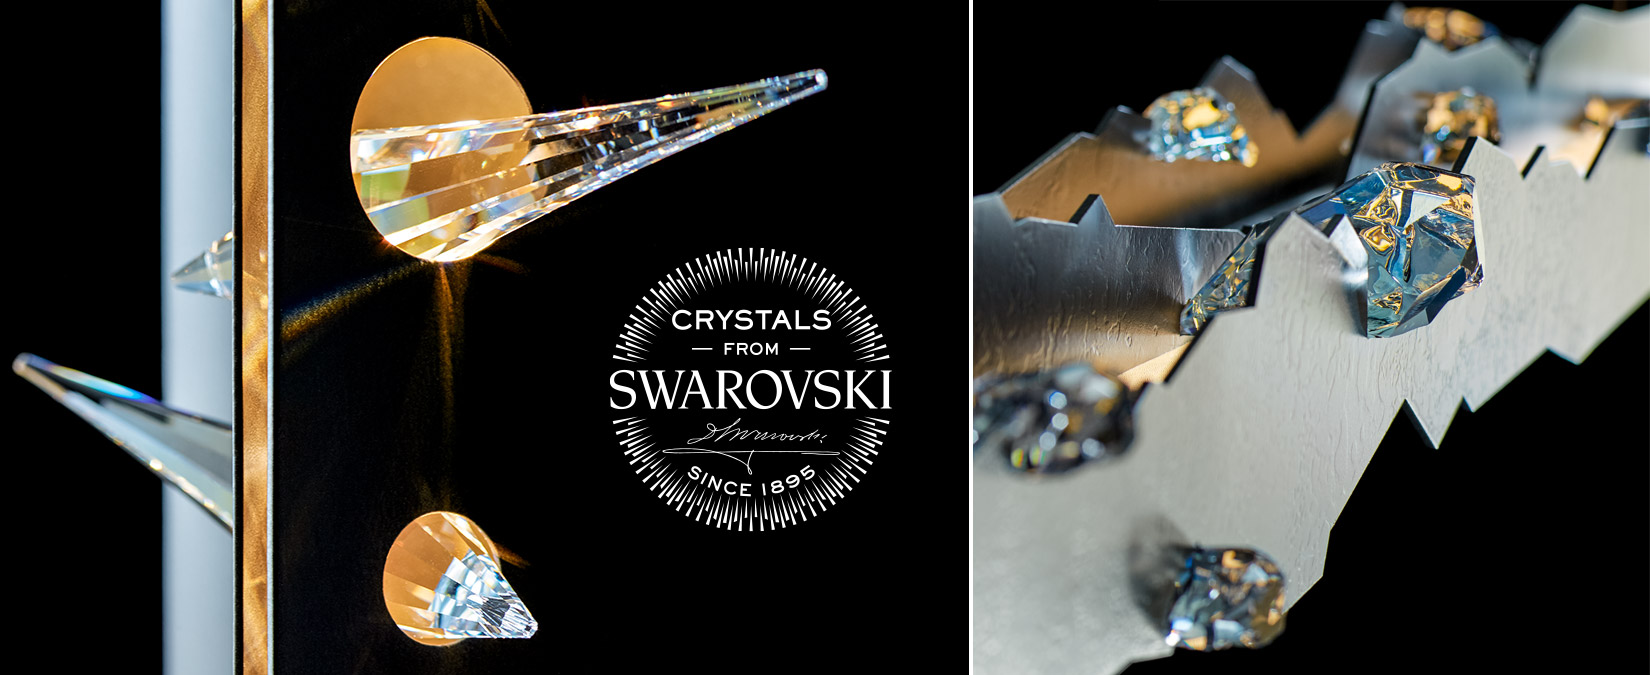 Lighting with Swarovski crystals